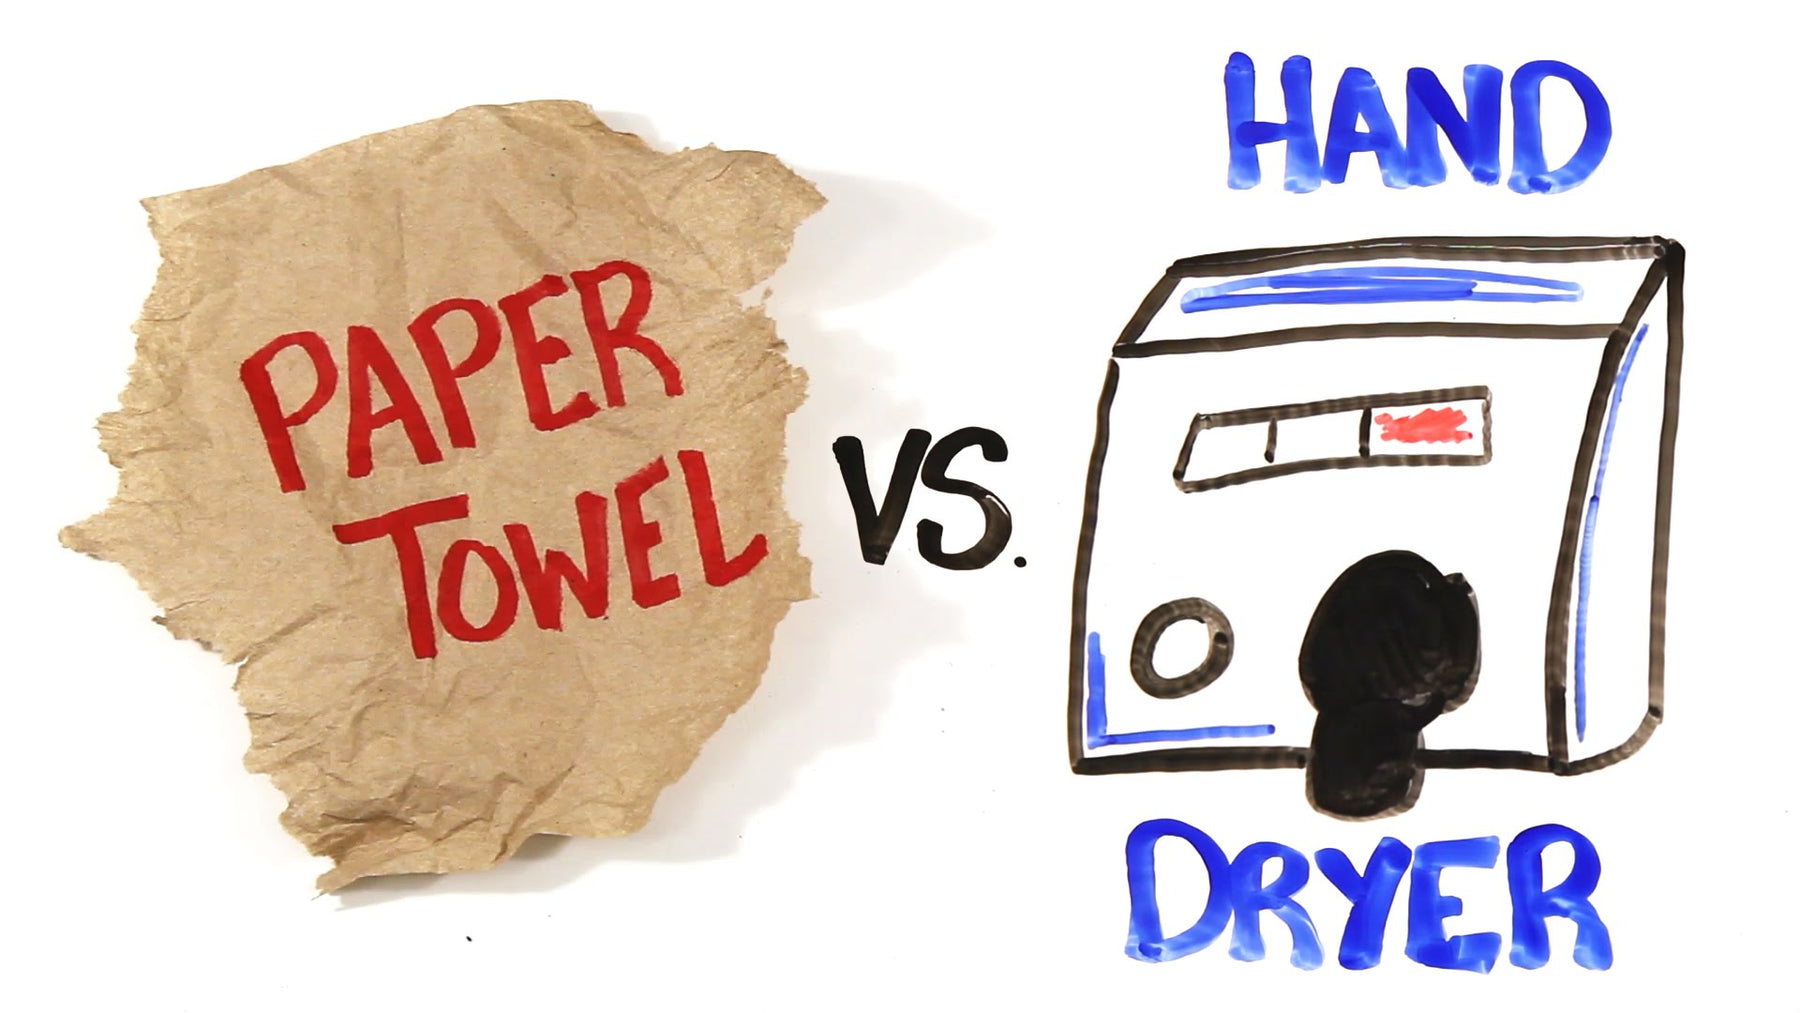 High Speed Hand Dryers vs. Paper Towels: The Choice Is Clear